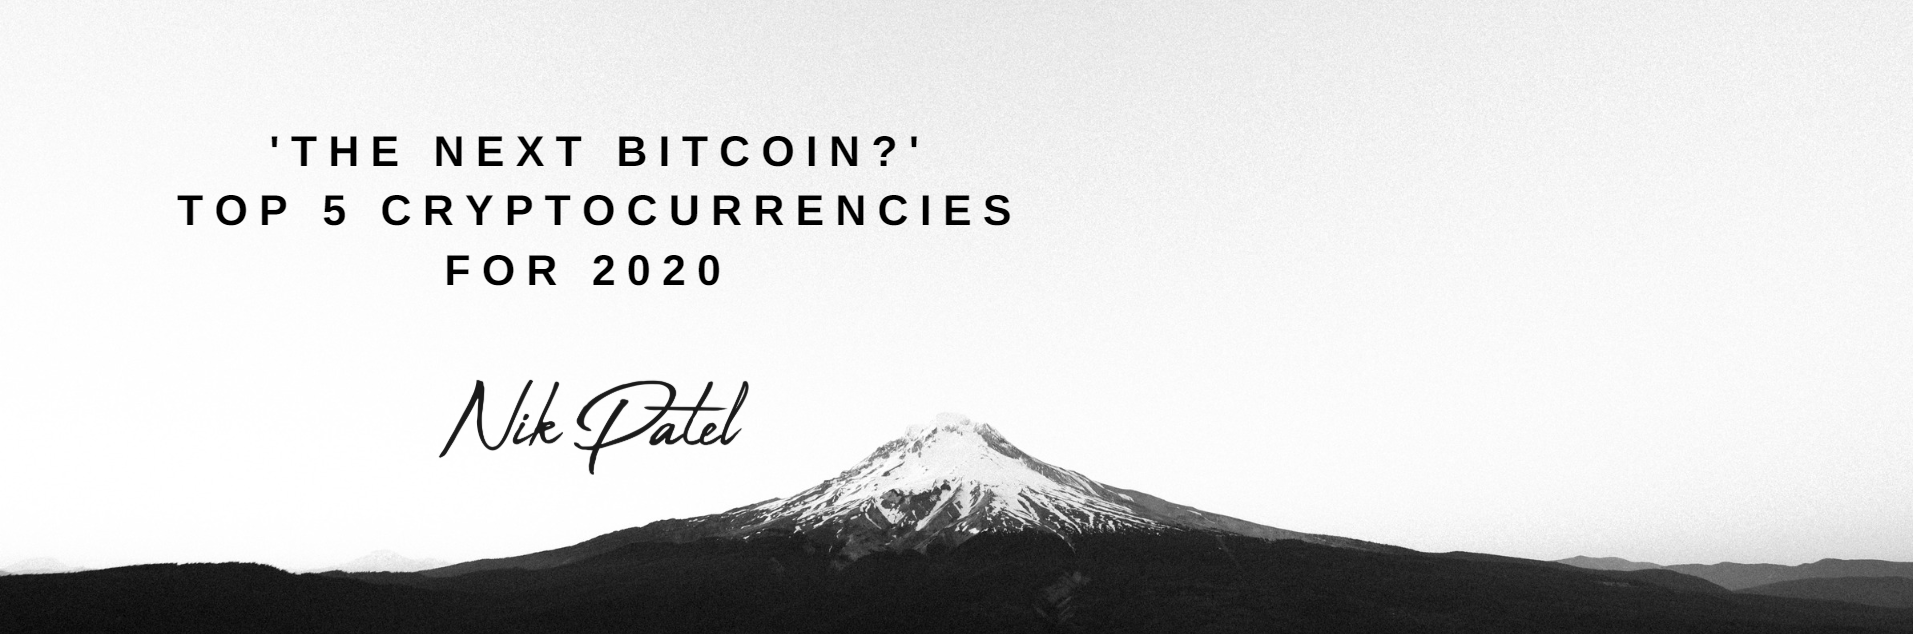 'The Next Bitcoin?' Top 5 Cryptocurrencies That Will Outperform in 2020